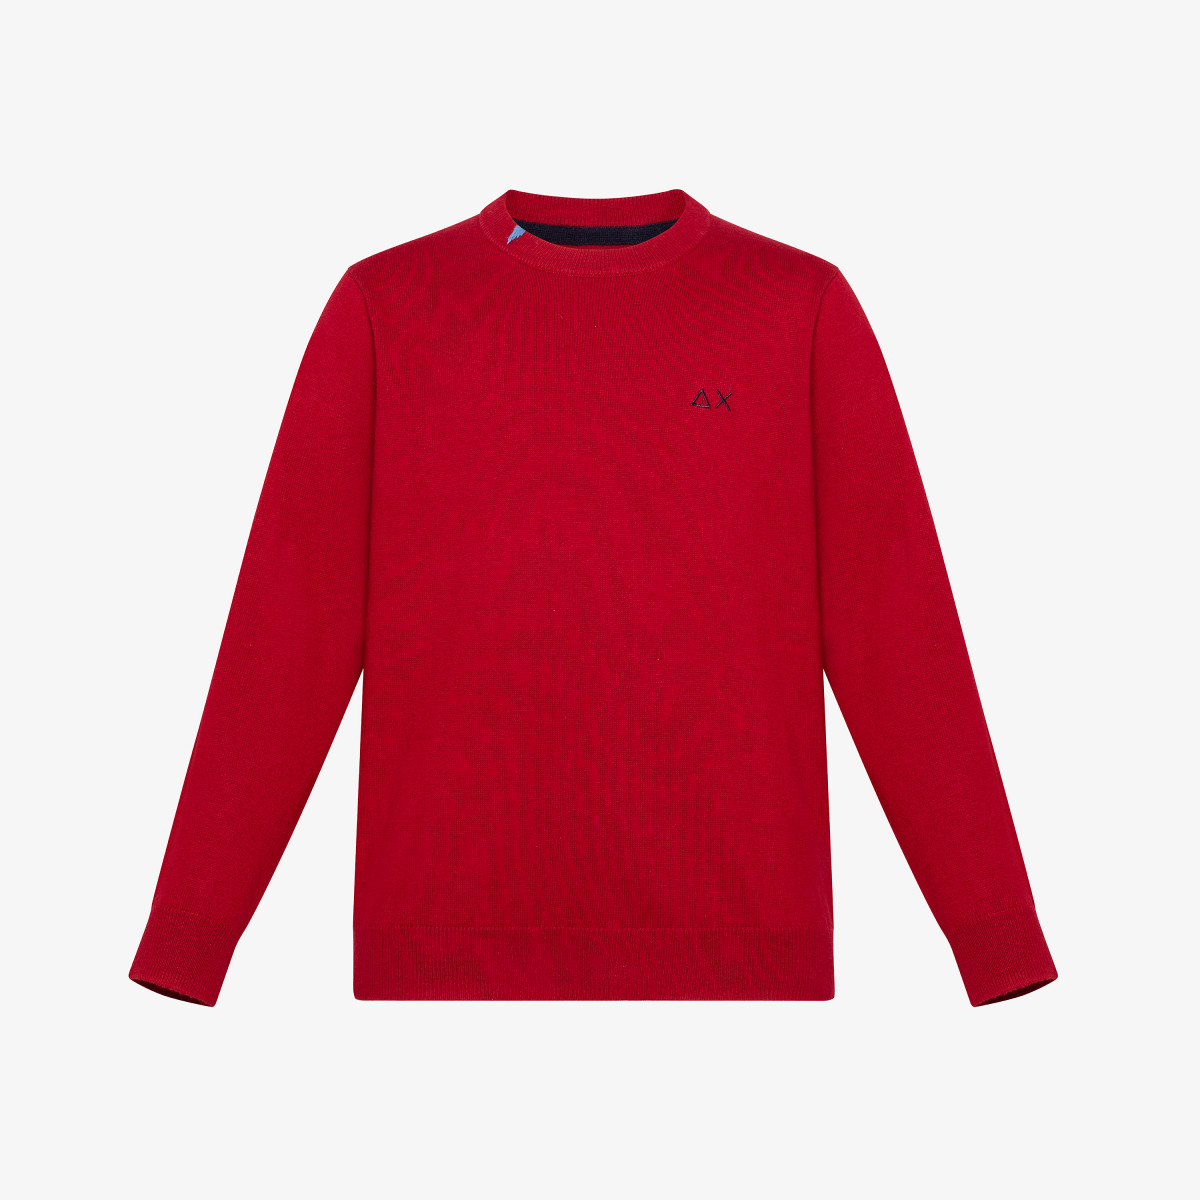 BOY'S ROUND SOLID BASIC ROSSO FUOCO